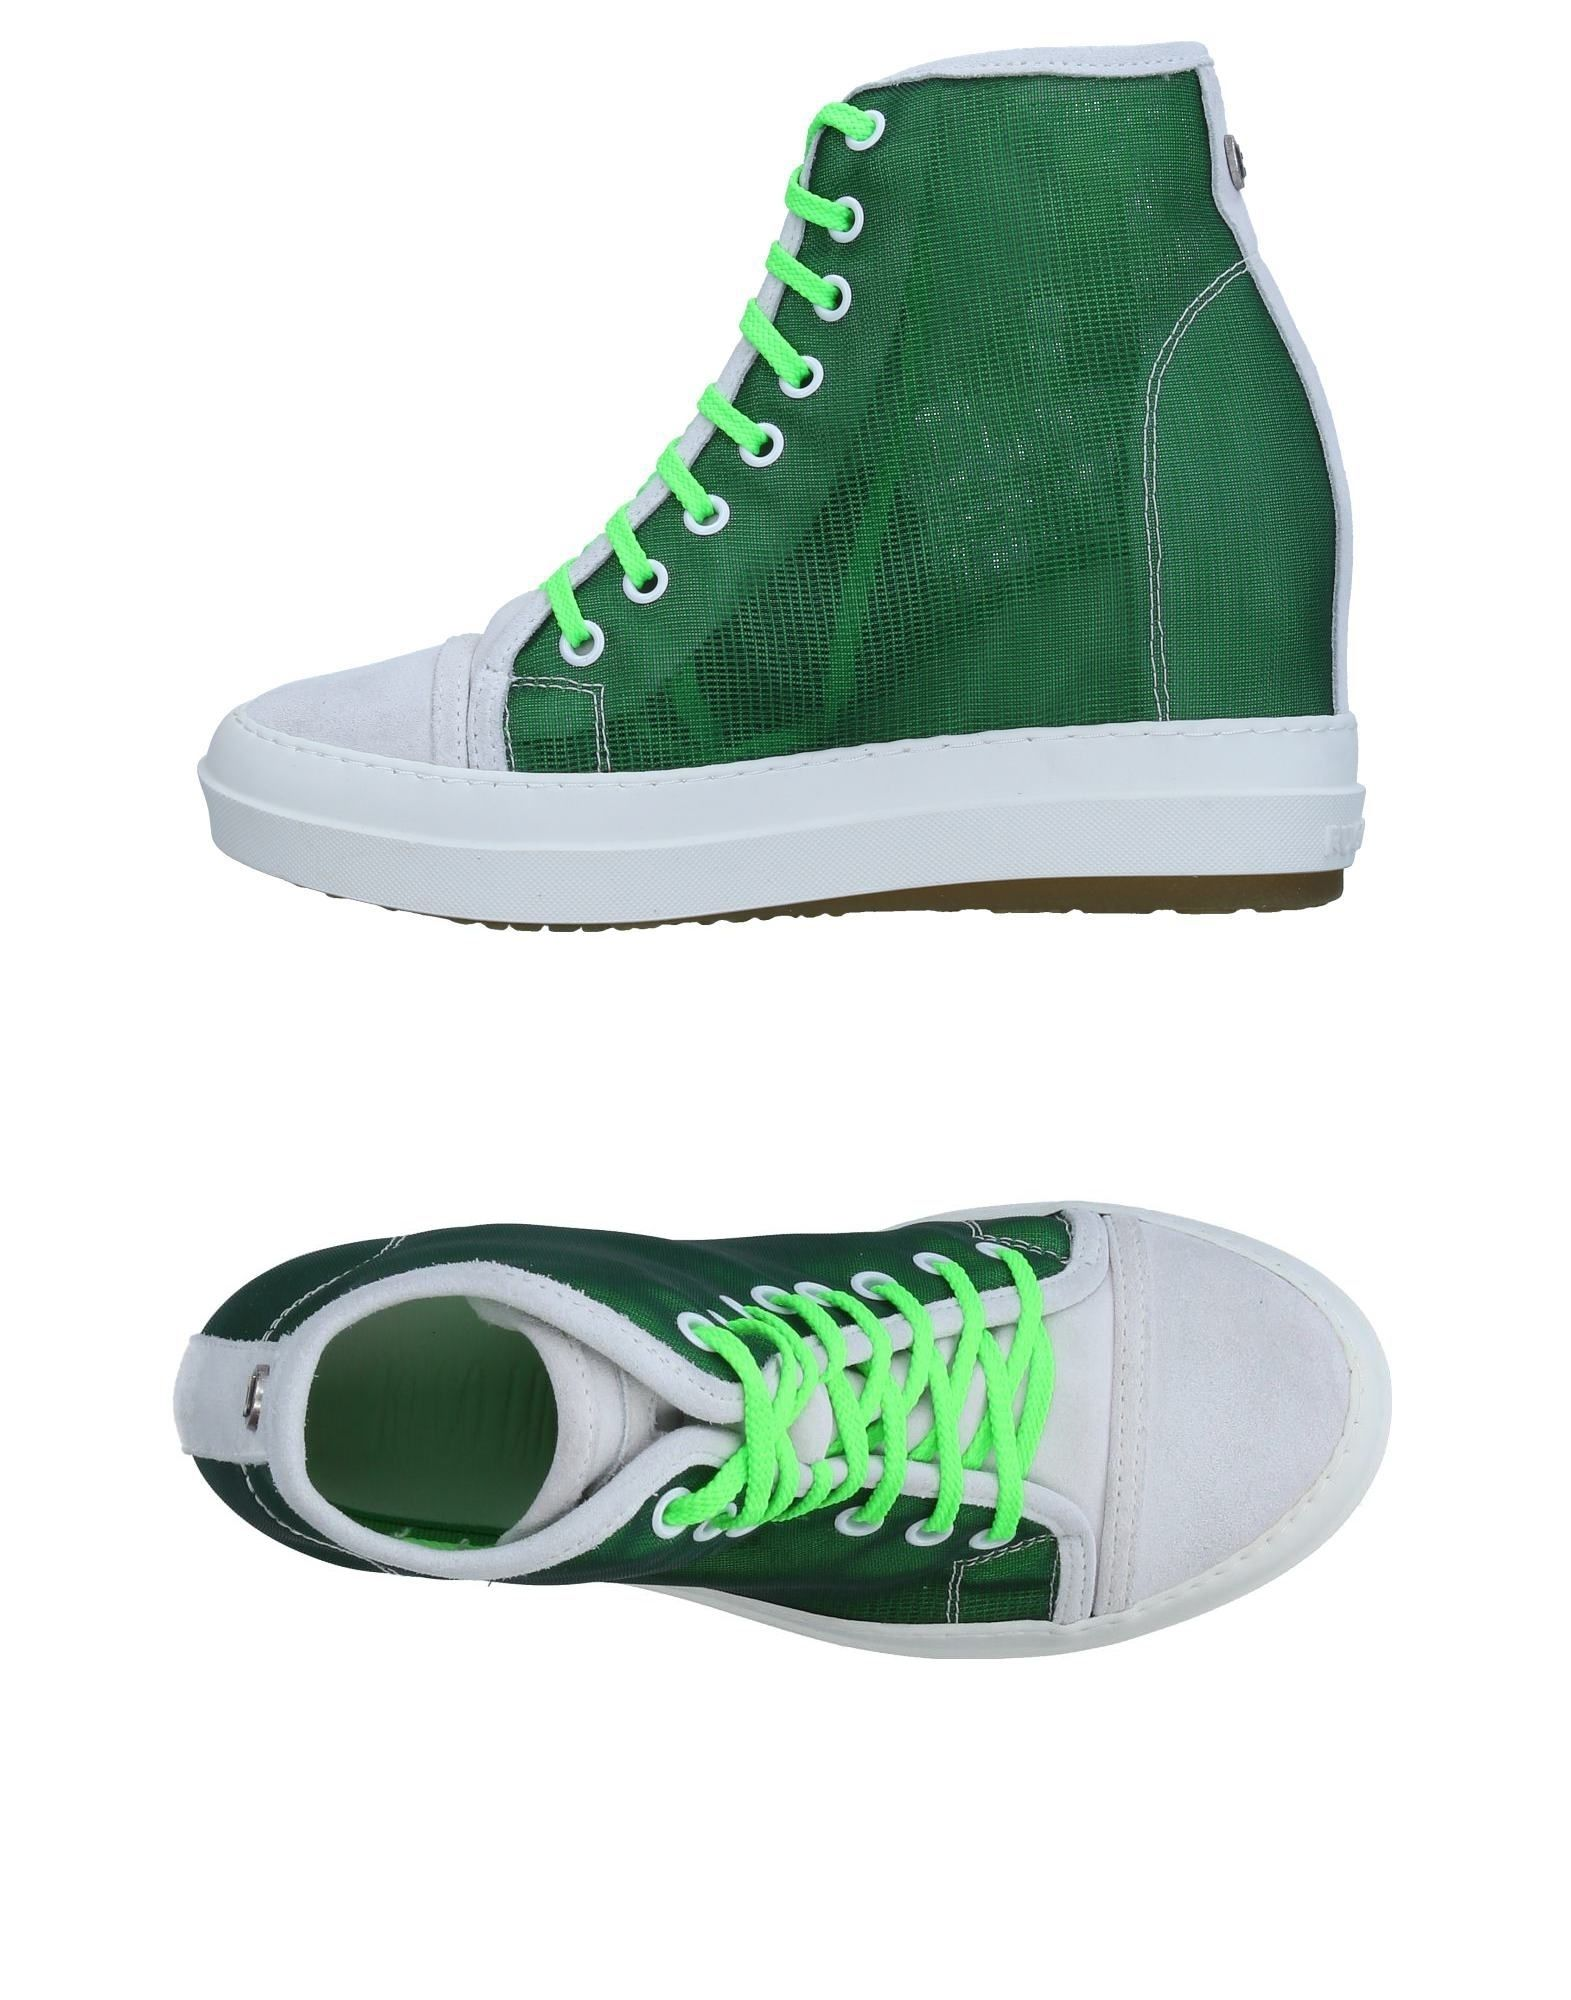 Baskets Ruco Line Femme - Baskets Ruco Line Vert Chaussures casual sauvages